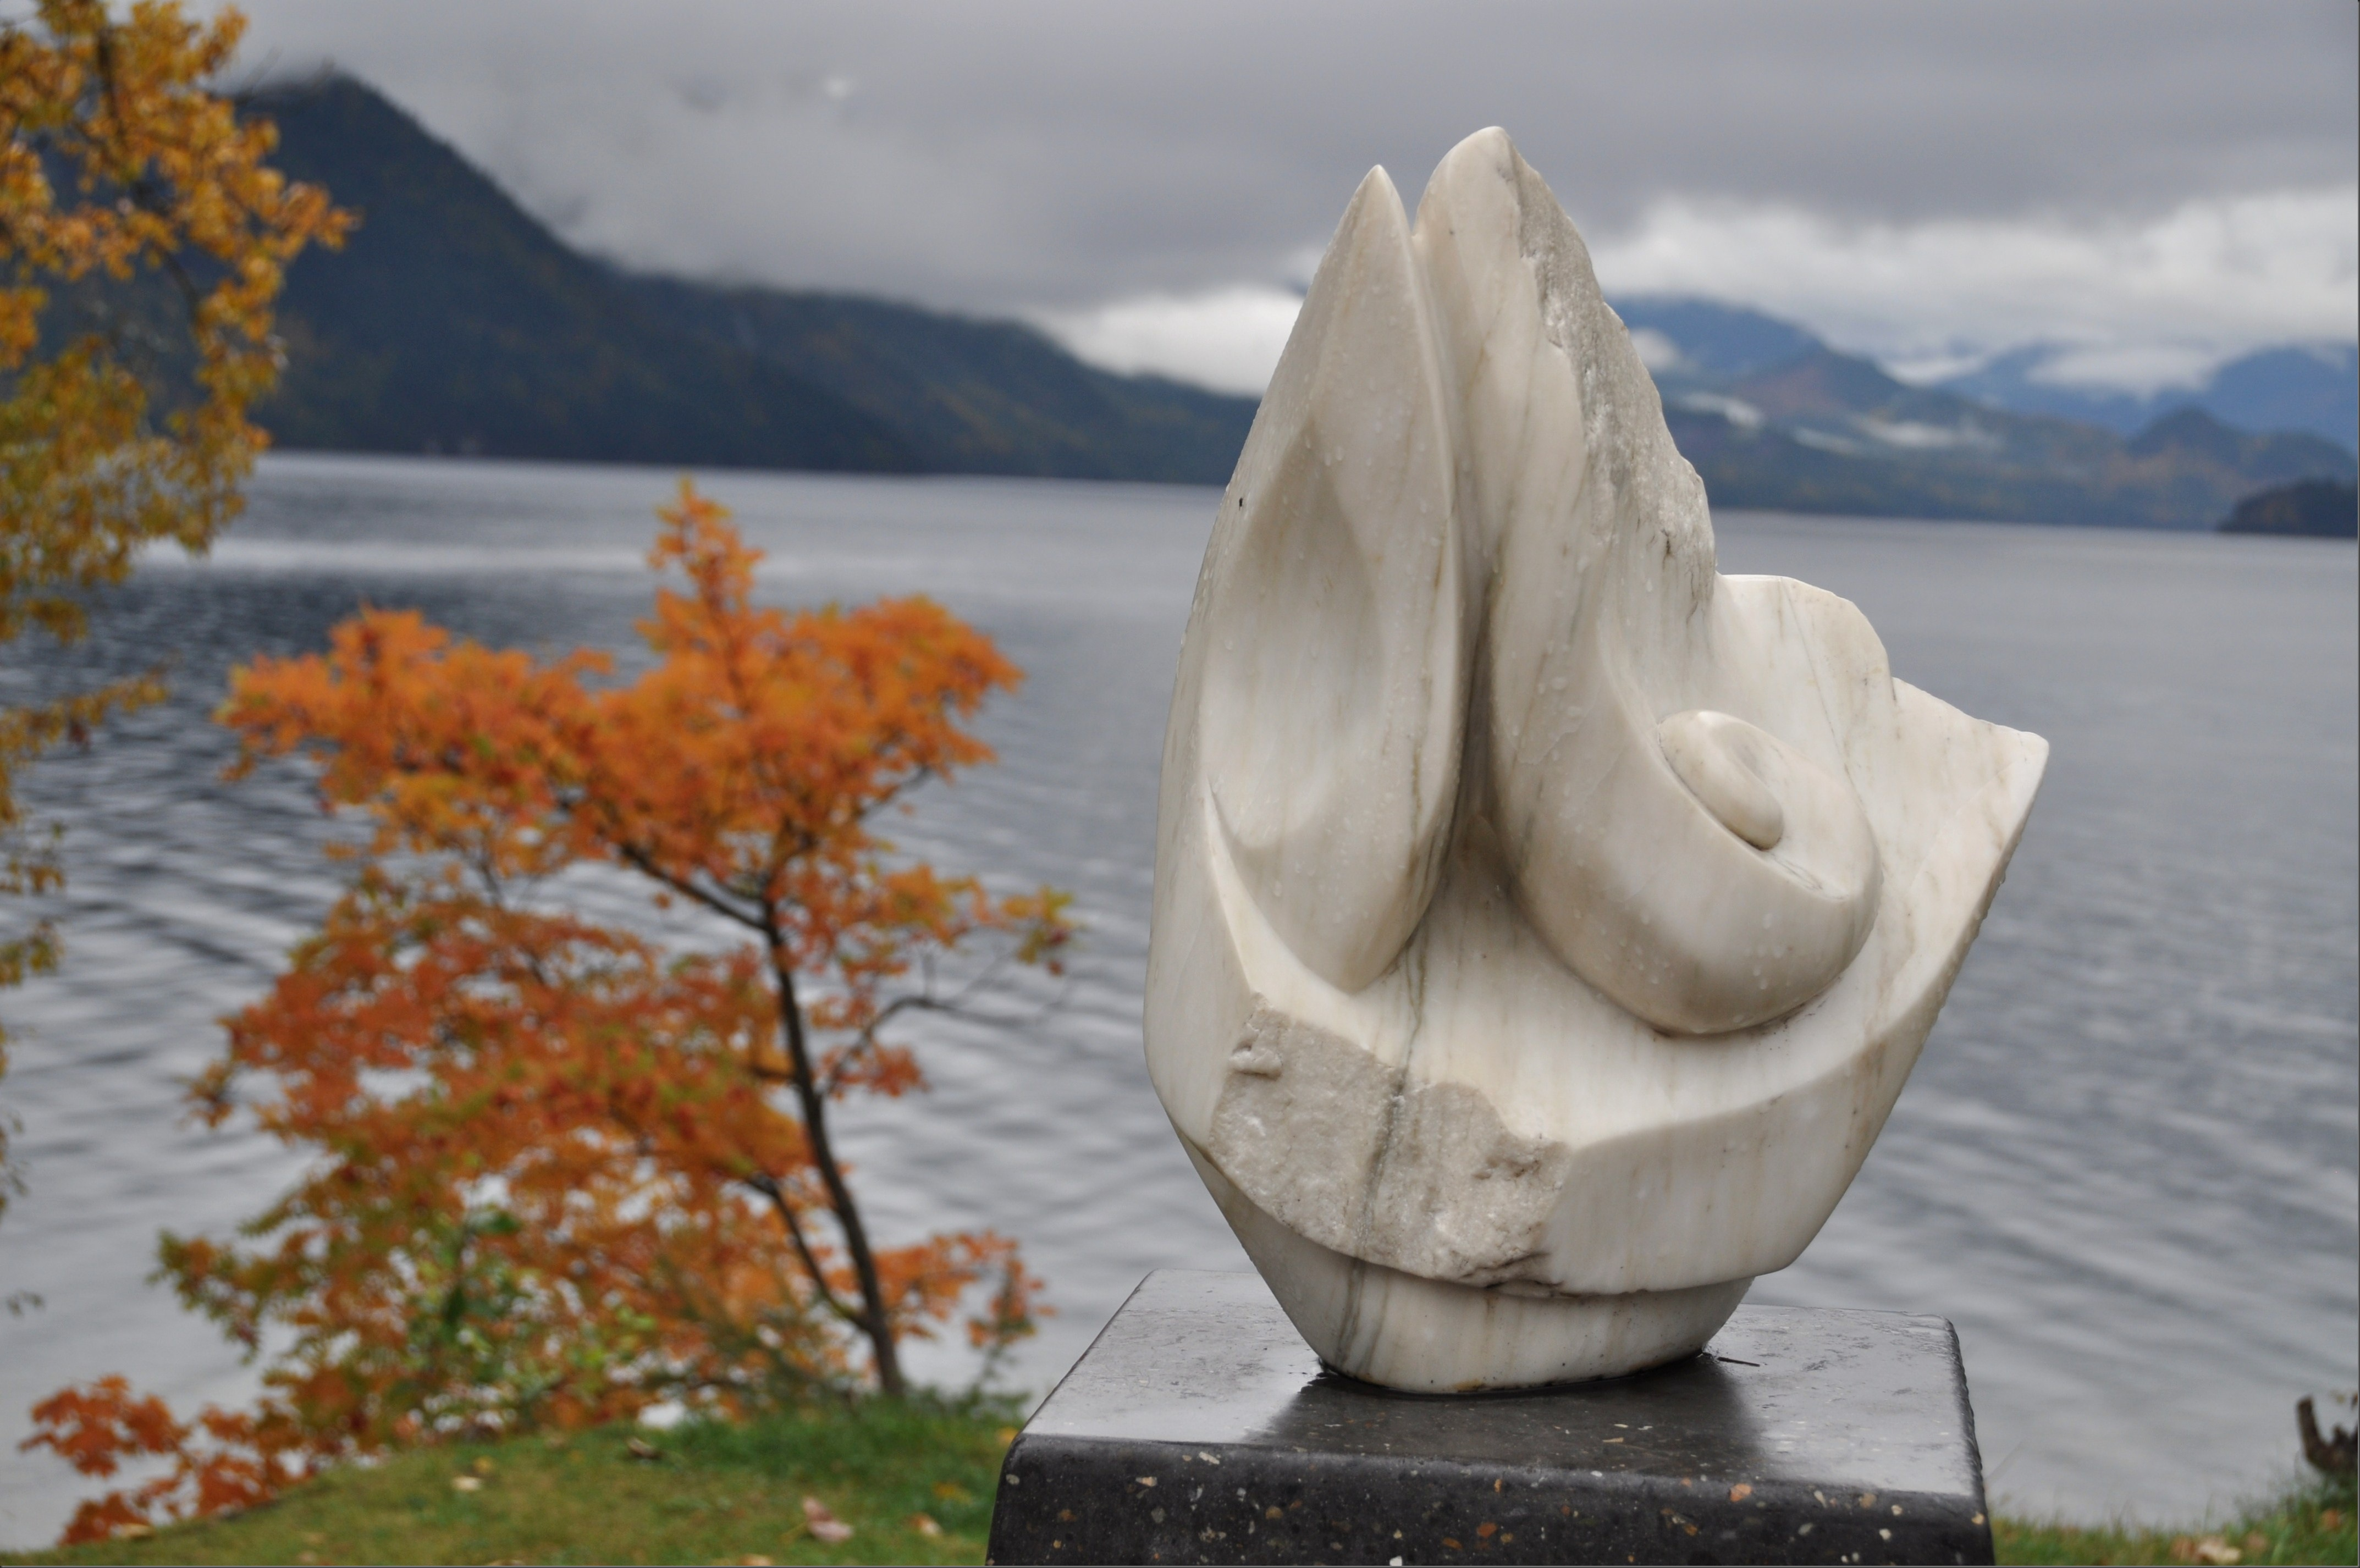 Sculpture at Slocan Lake in New Denver BC - Oct.24, 2014 Bruce Witzel photo